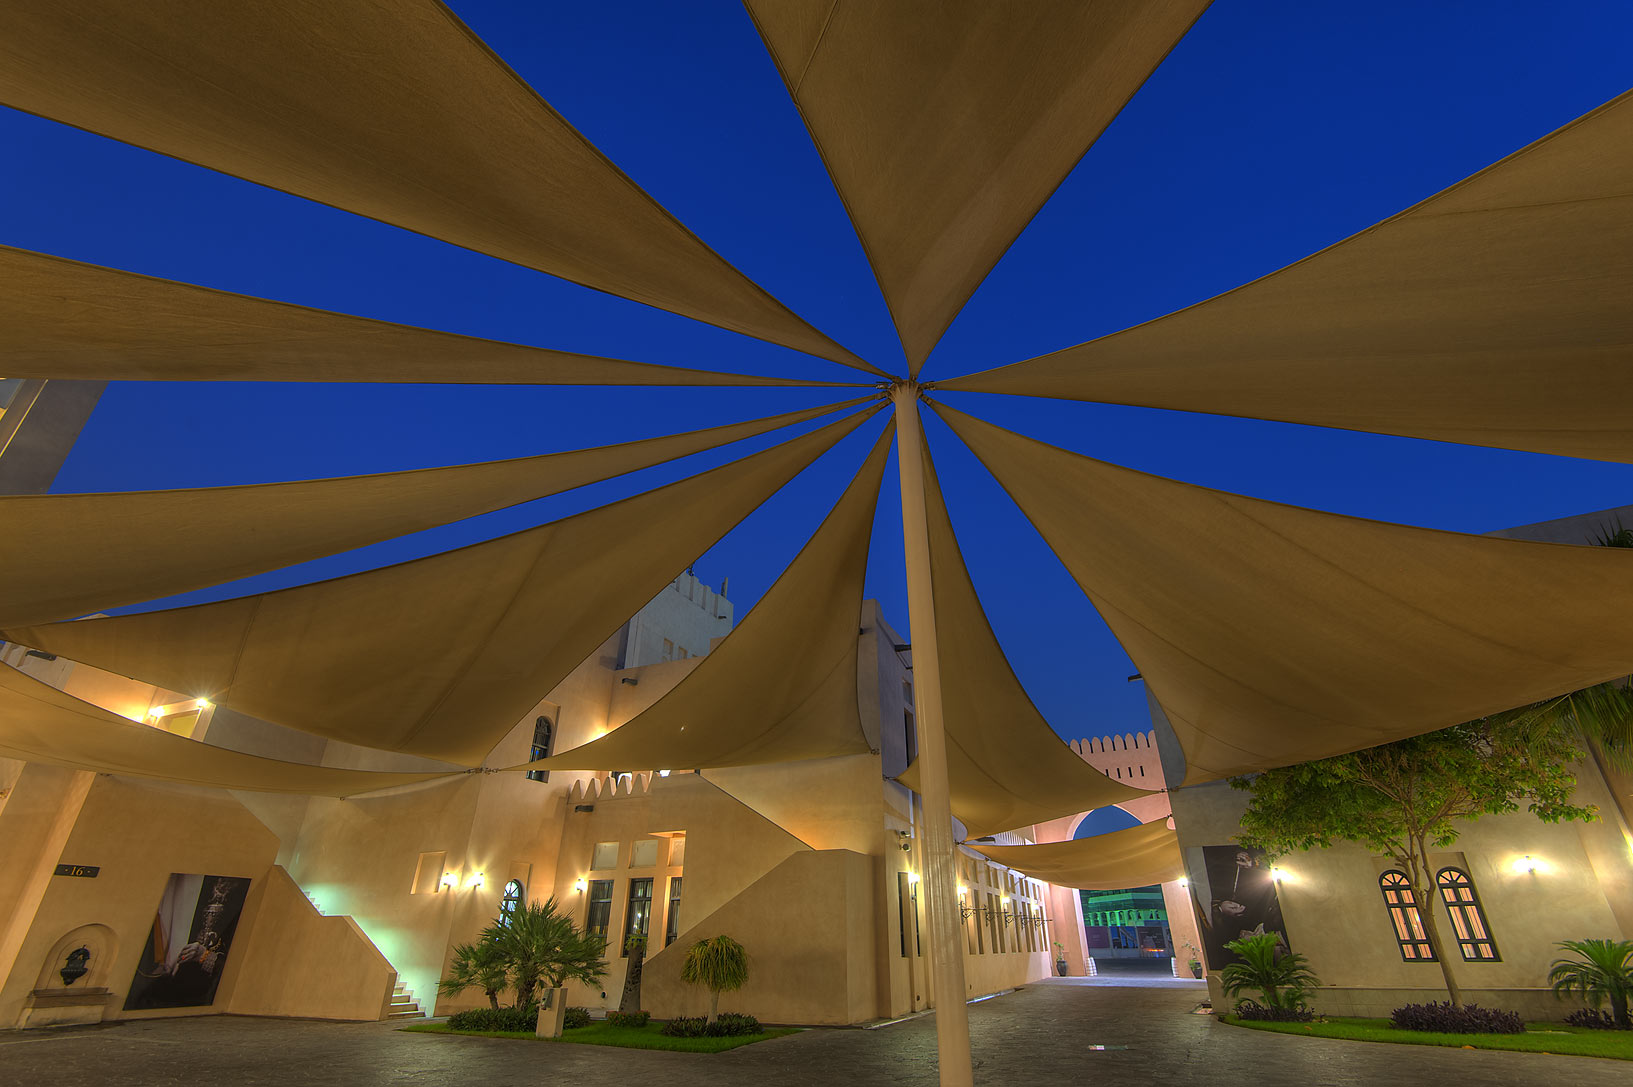 Shade sails in Katara Cultural Village at morning. Doha, Qatar